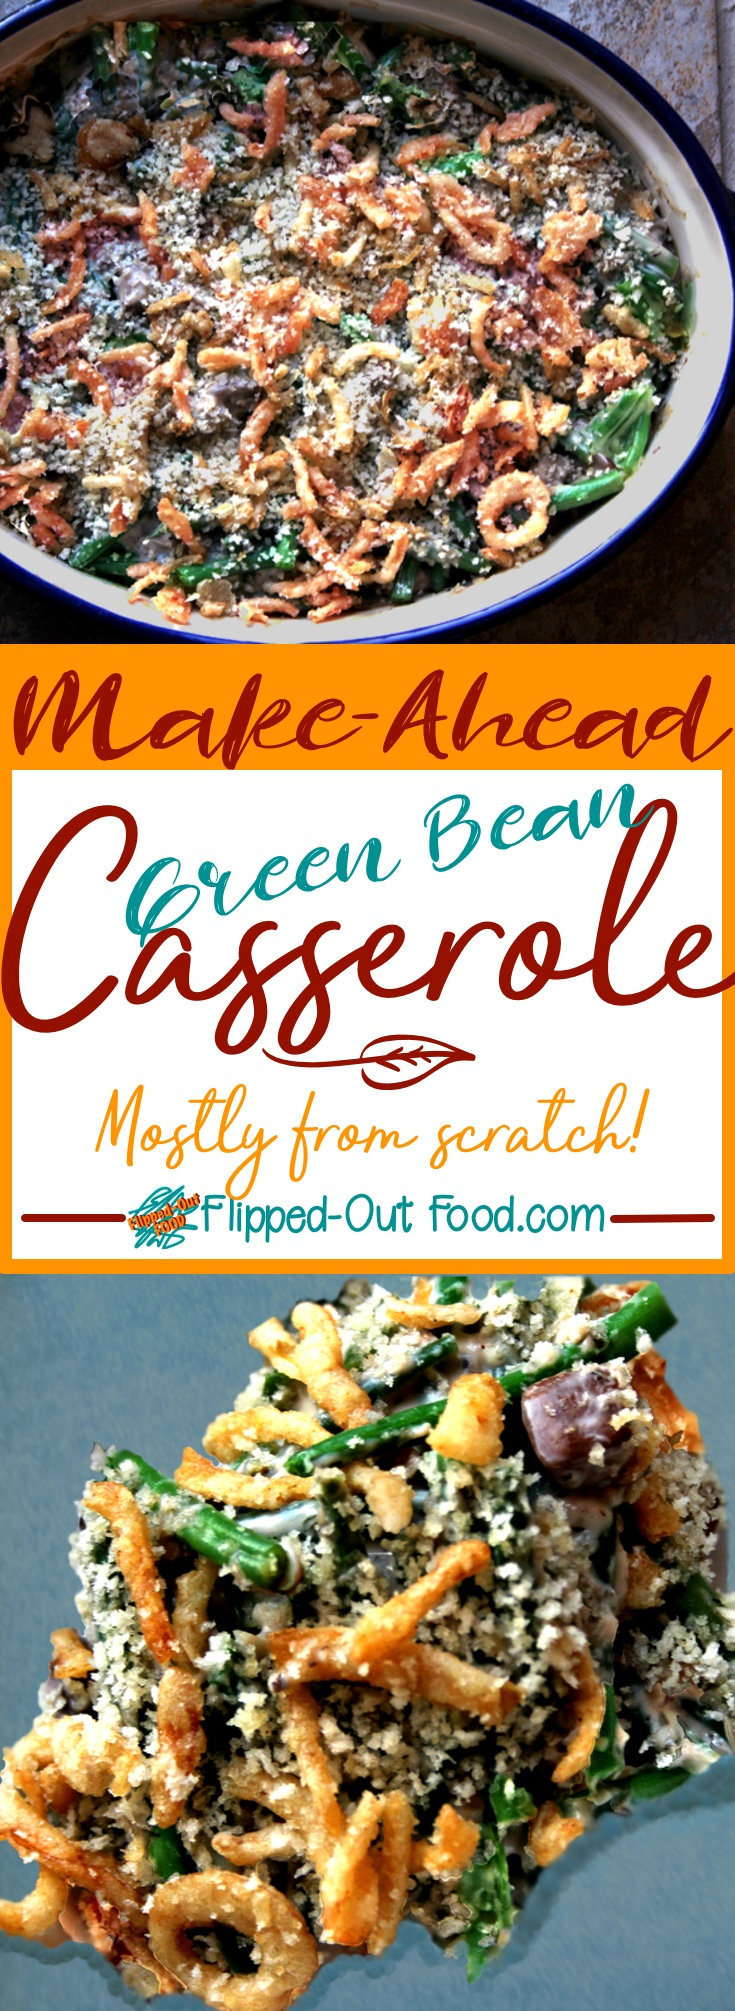 Make-Ahead Green Bean Casserole is made with fresh green beans and a homemade cream-of-mushroom soup that is delicious enough to be eaten on its own.